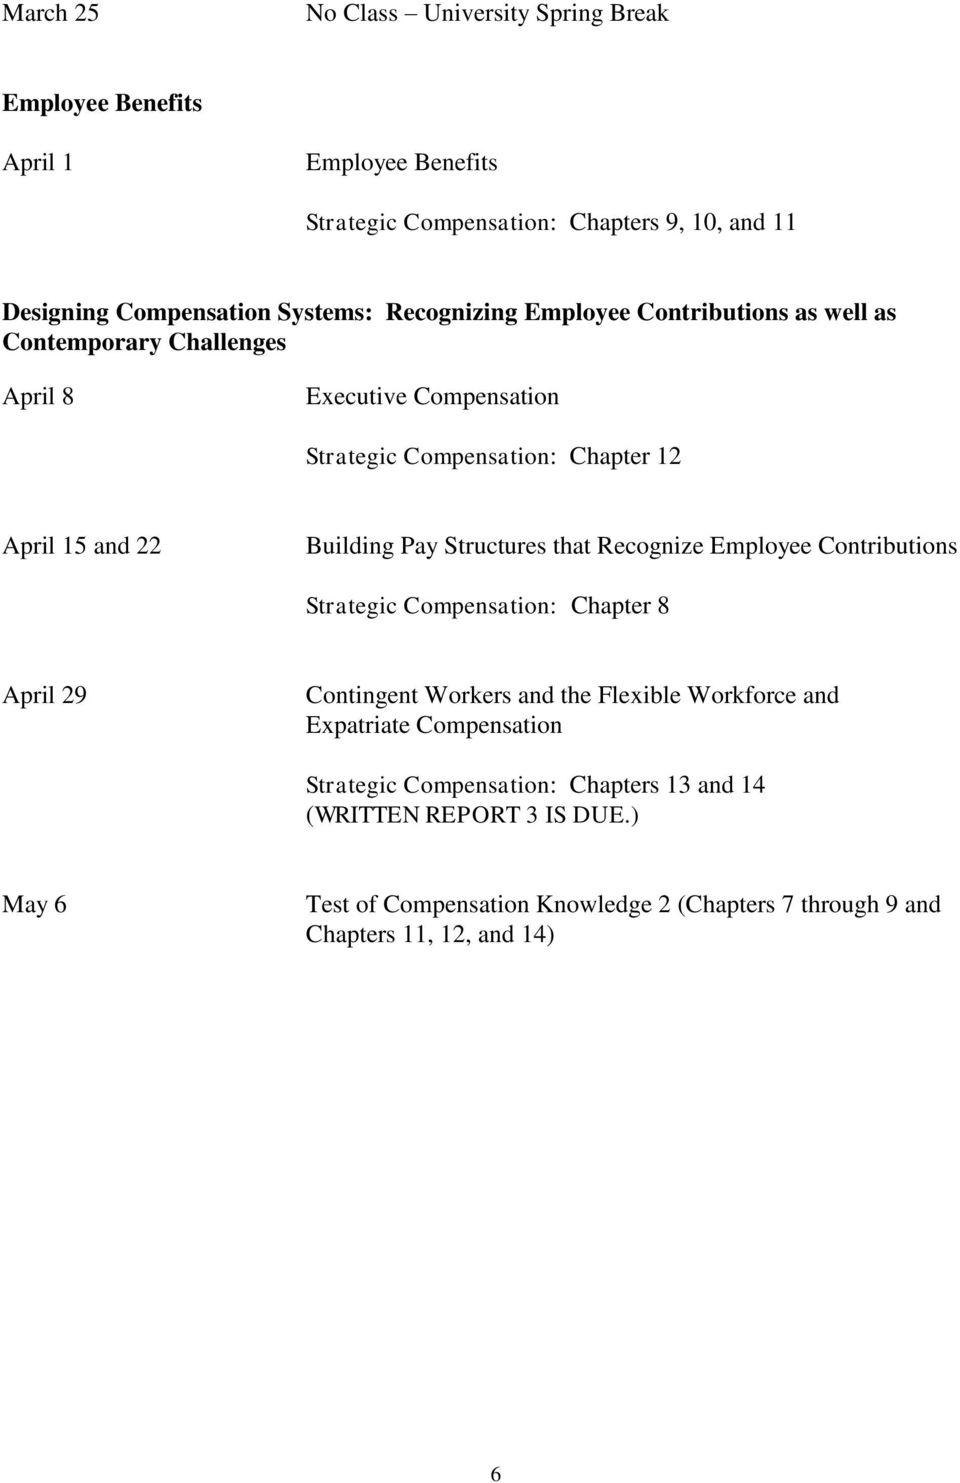 Structures that Recognize Employee Contributions Strategic Compensation: Chapter 8 April 29 Contingent Workers and the Flexible Workforce and Expatriate